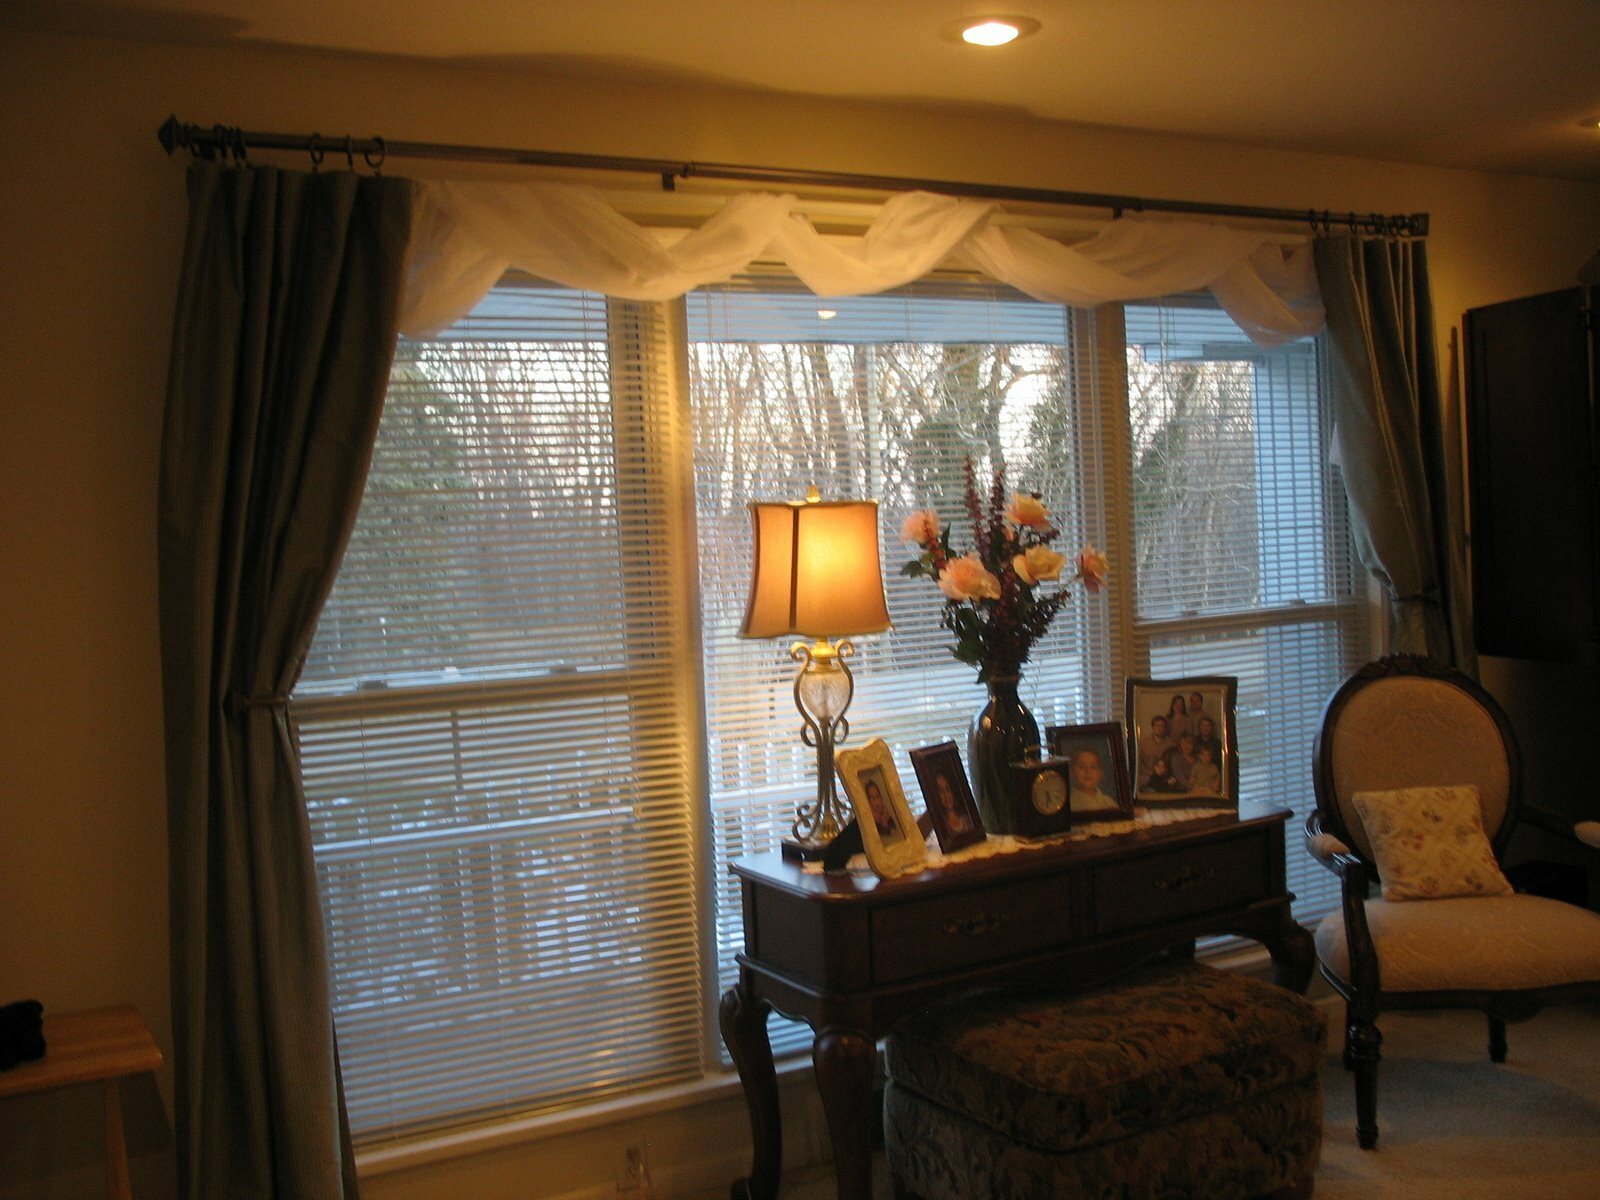 Cute Living Room Valances for Your Home Decorating Ideas: Living Room Valances | Curtain Valances For Bedroom | Valances For Dining Room Windows